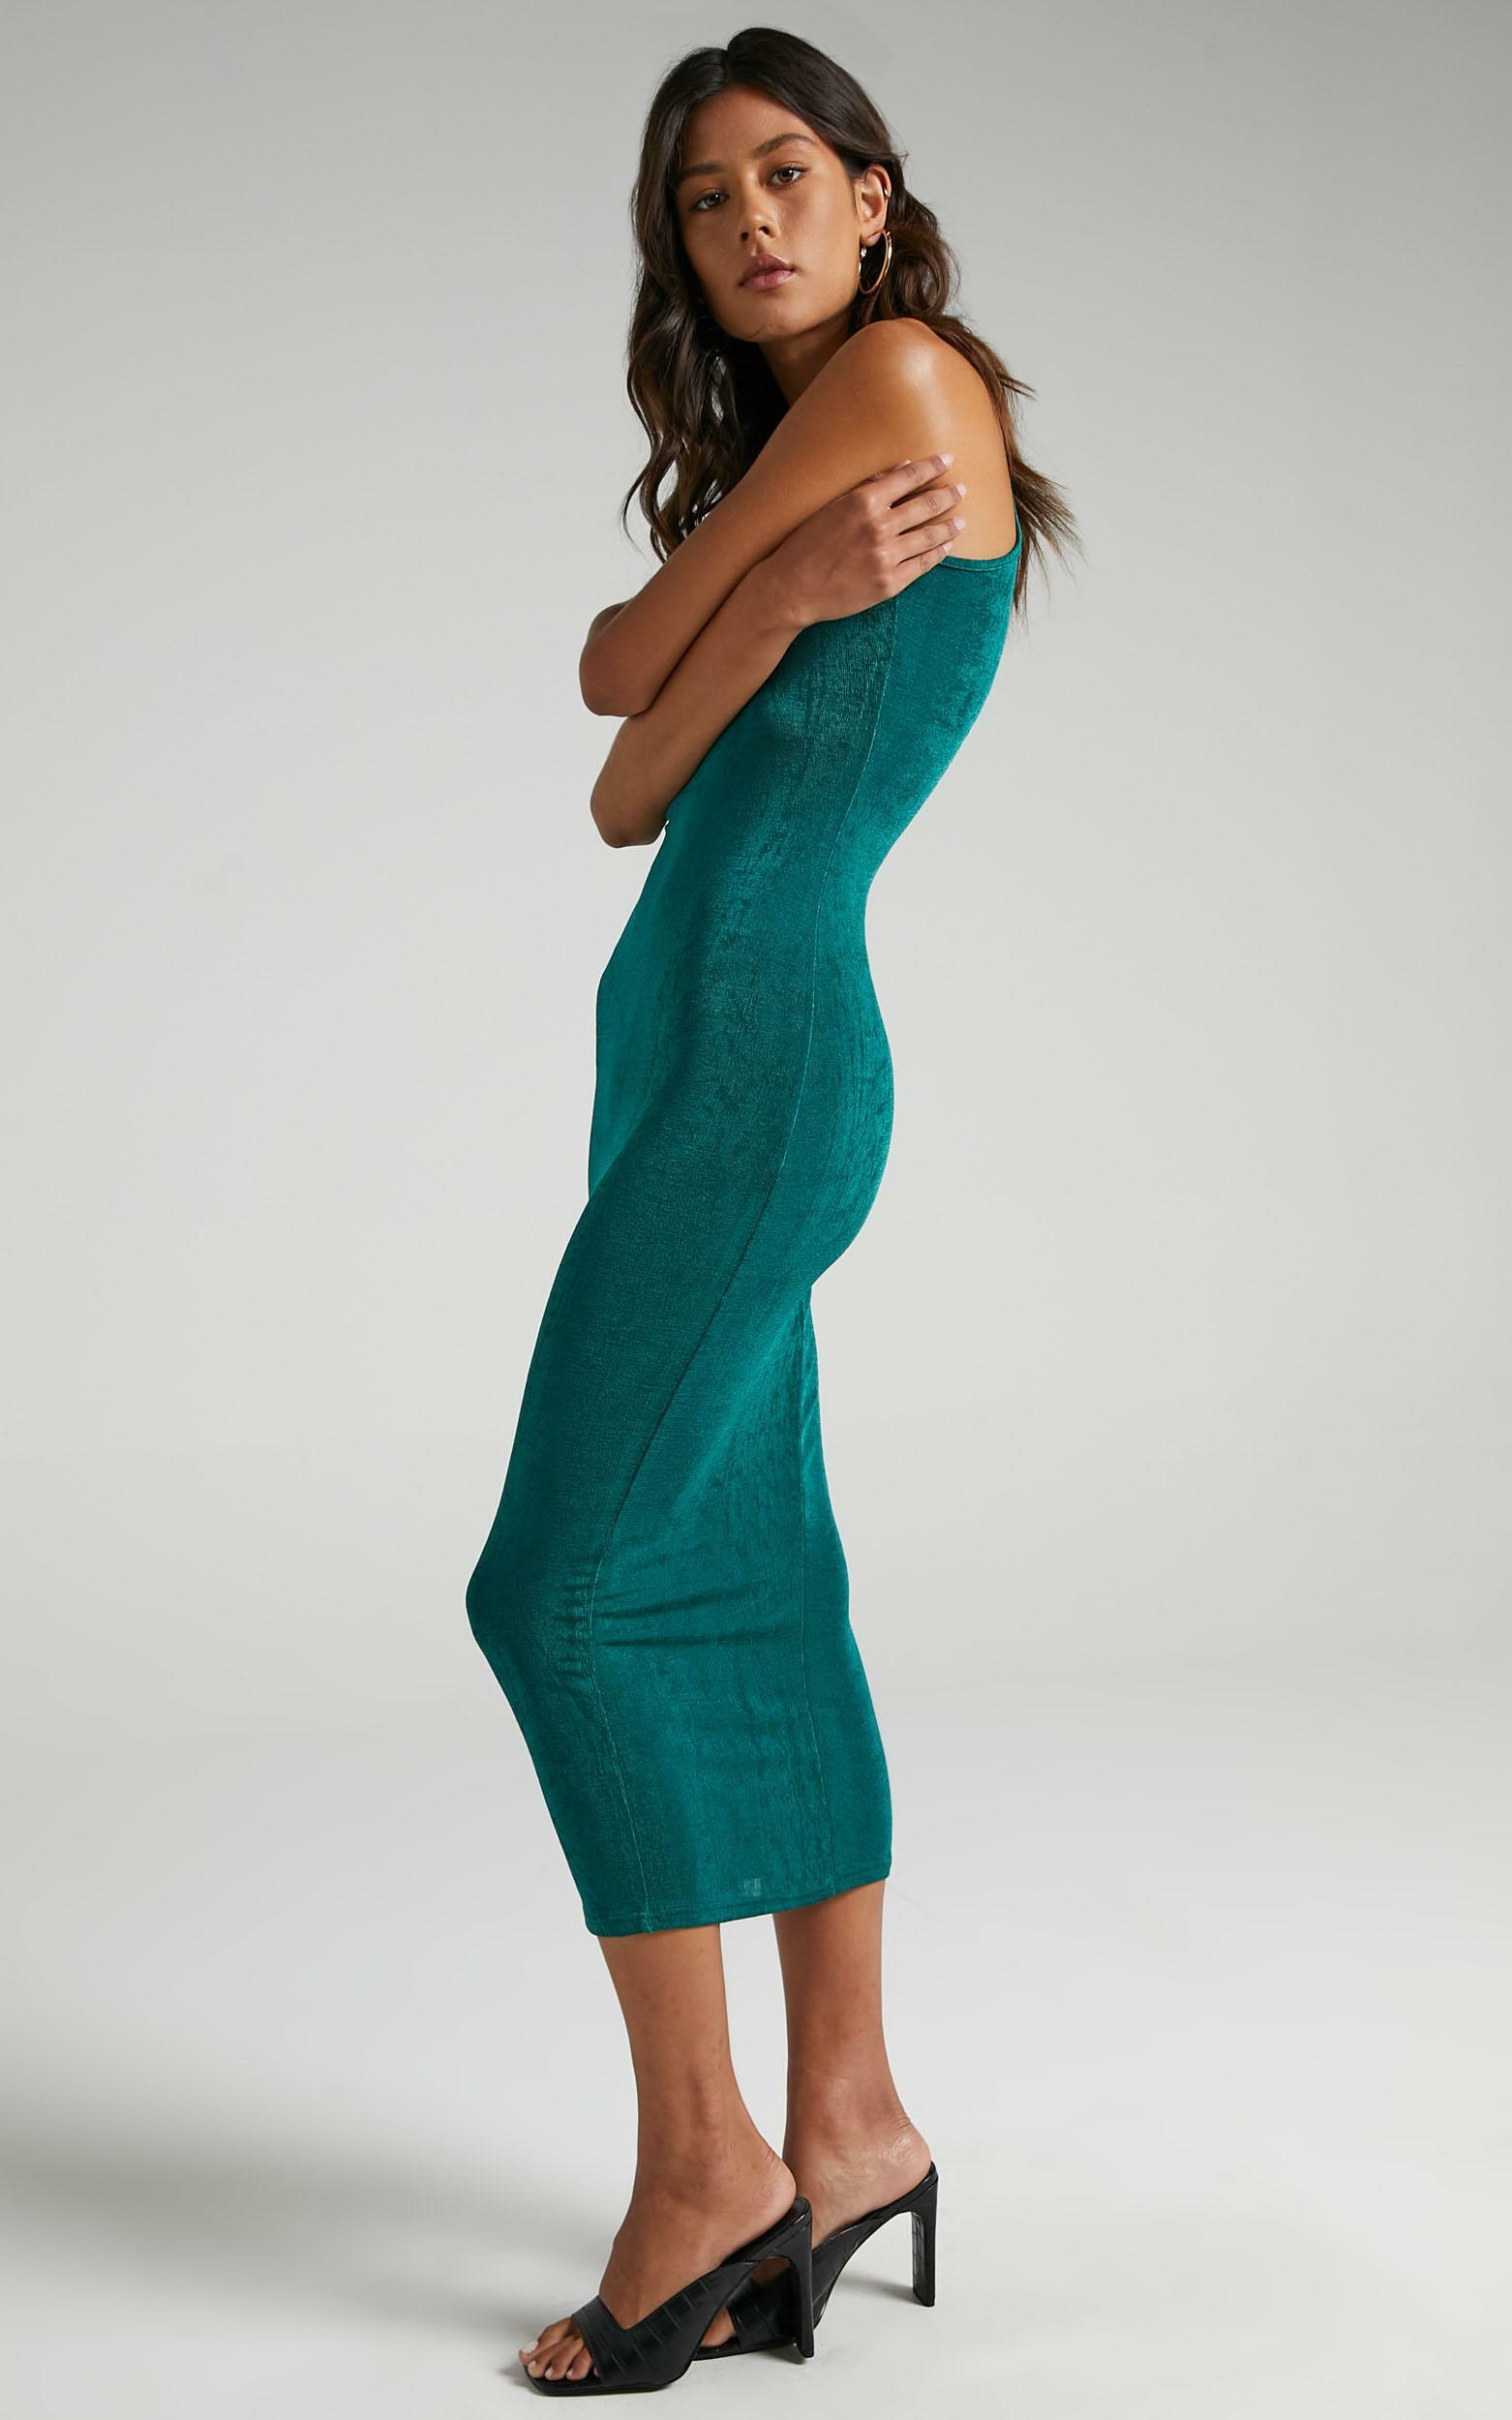 Lioness - Everlast Dress in Forest Green - 6 (XS), GRN5, hi-res image number null